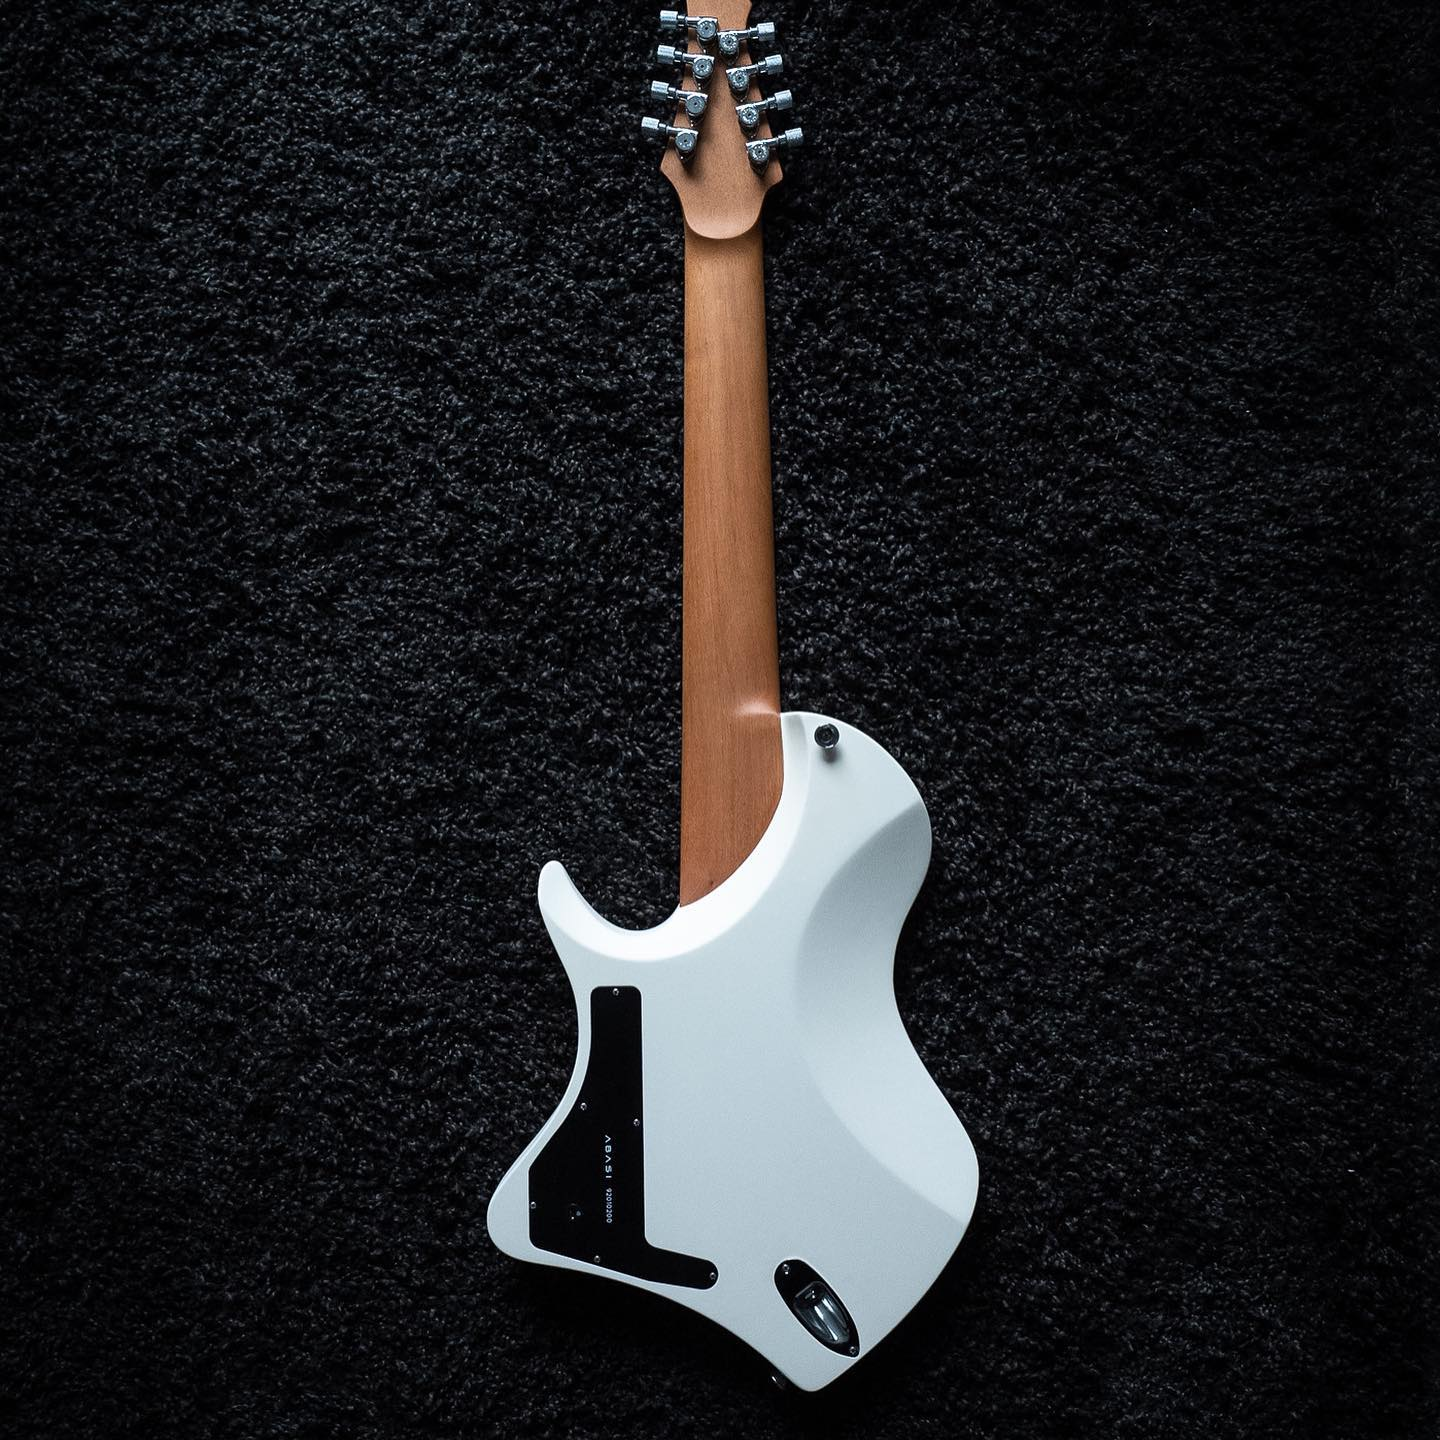 Abasi Guitars Larada 8 in Olympic White rear